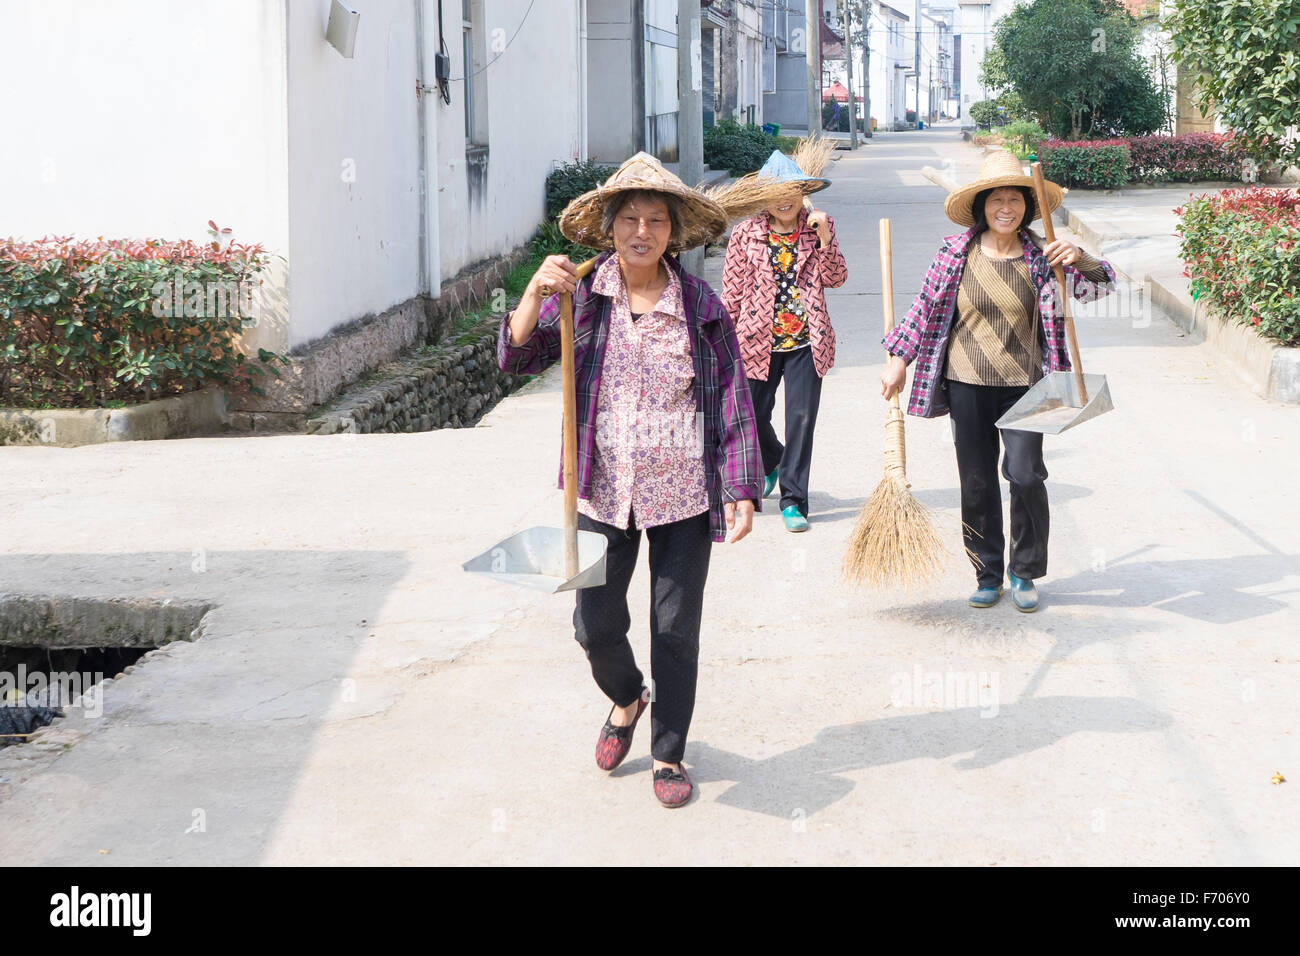 Three house wives walking down the street in Siping Village, Jinhua, China - Stock Image